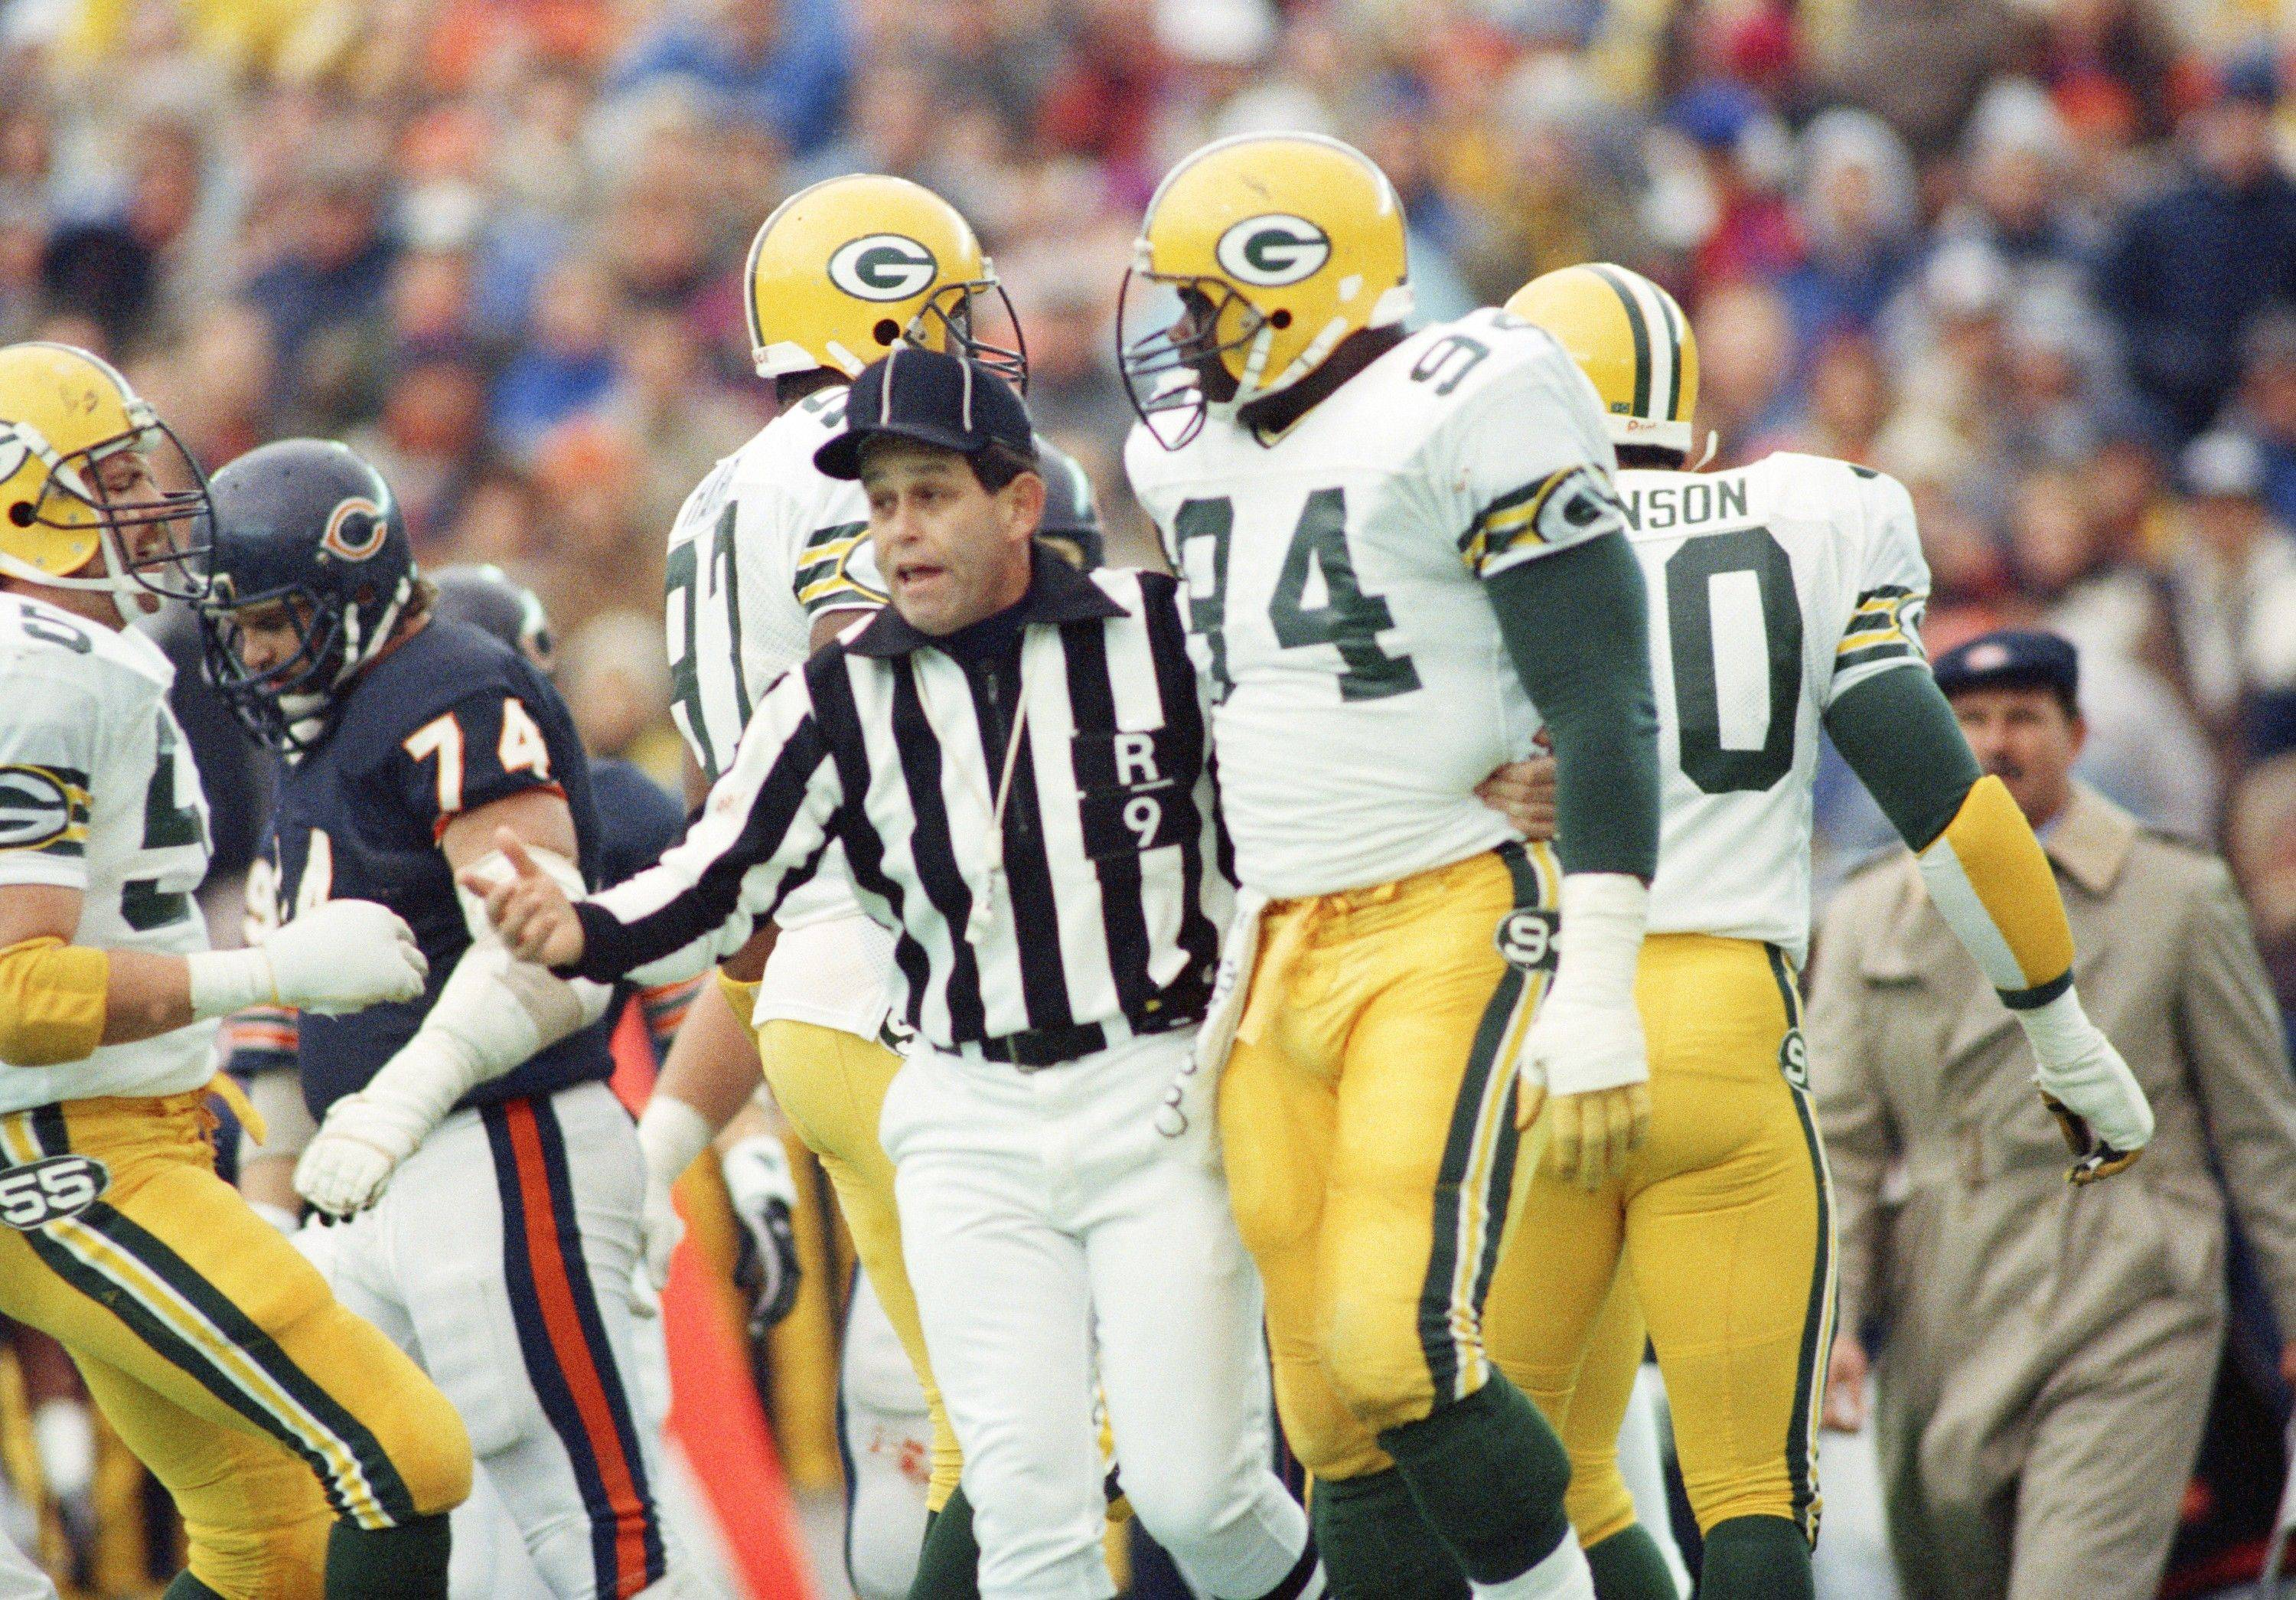 Green Bay defensive lineman Charles Martin, is ejected from the game for roughing up Bears quarterback Jim McMahon, Nov. 25, 1986 in Chicago. He was suspended for two games, the most severe penalty handed down for an on-the-field incident in Commissioner Pete Rozelle's 26 years.